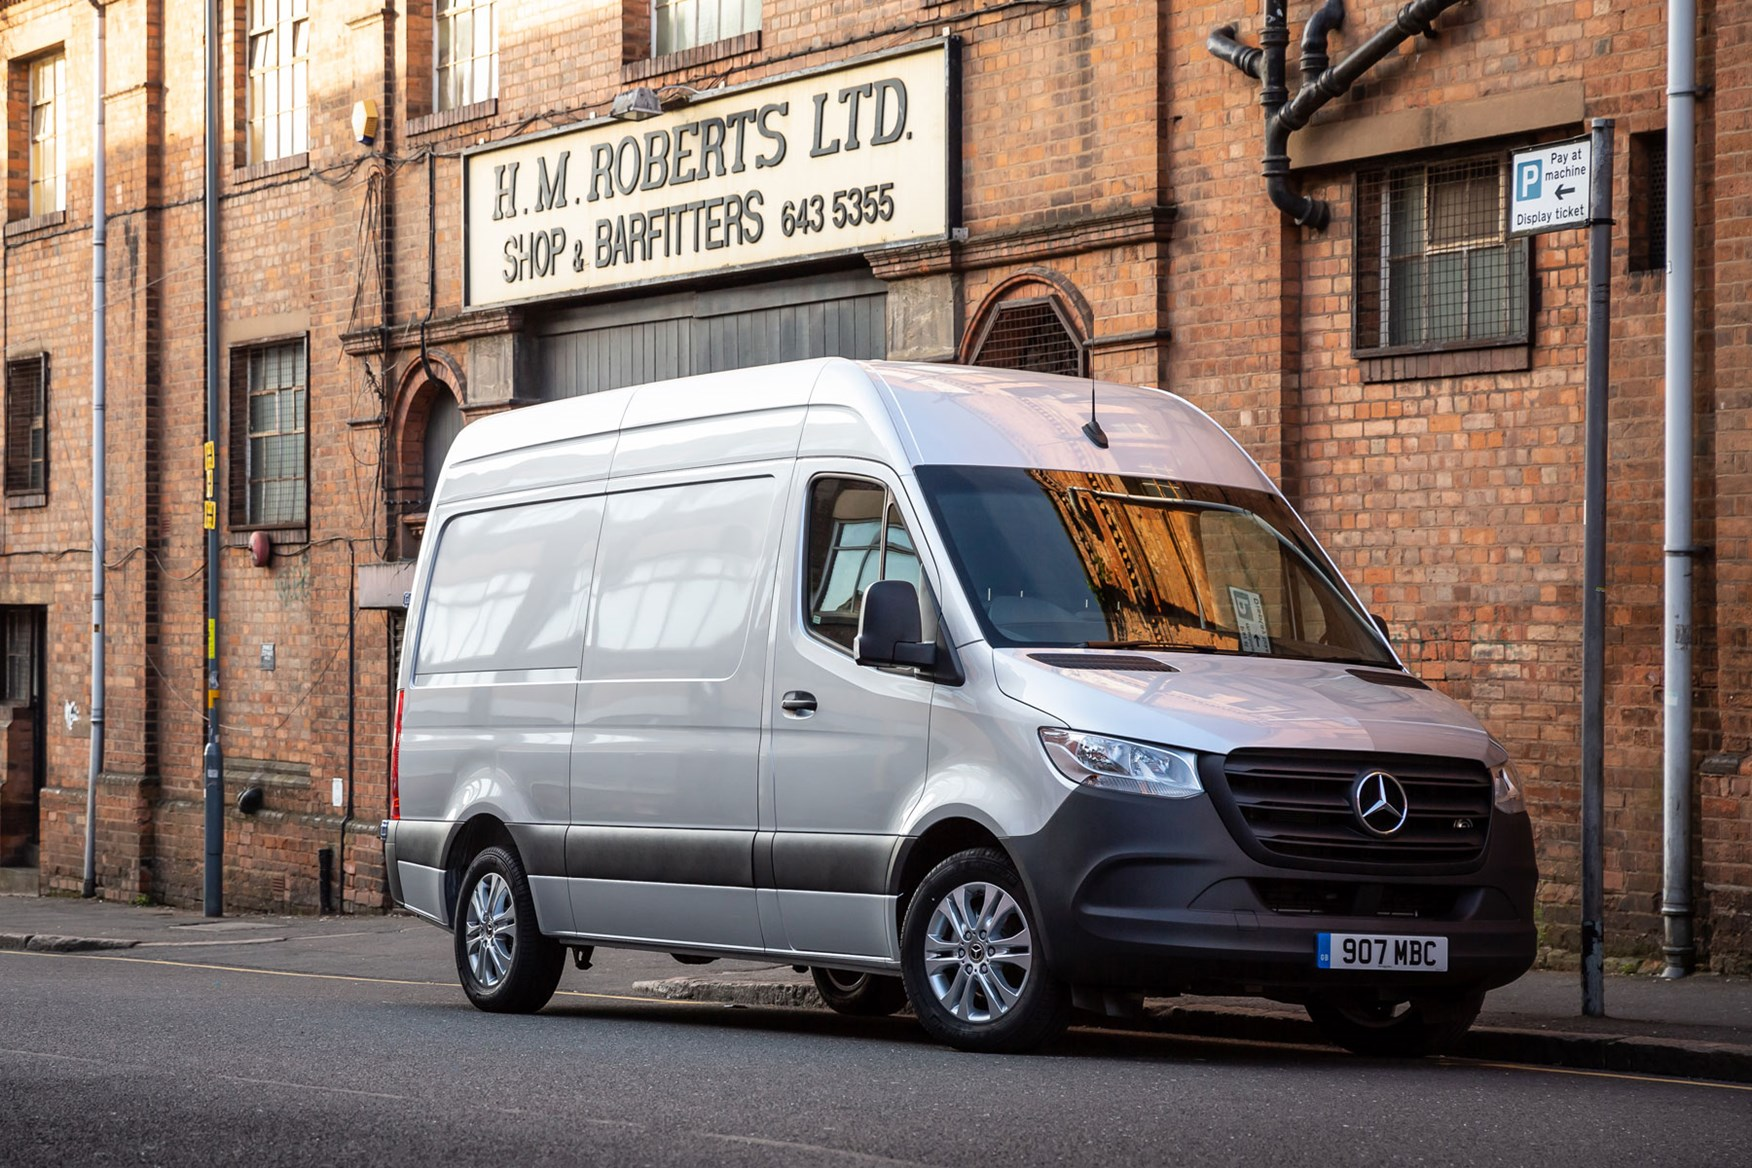 Mercedes Sprinter (2018-on), front view, silver, UK, parked in street